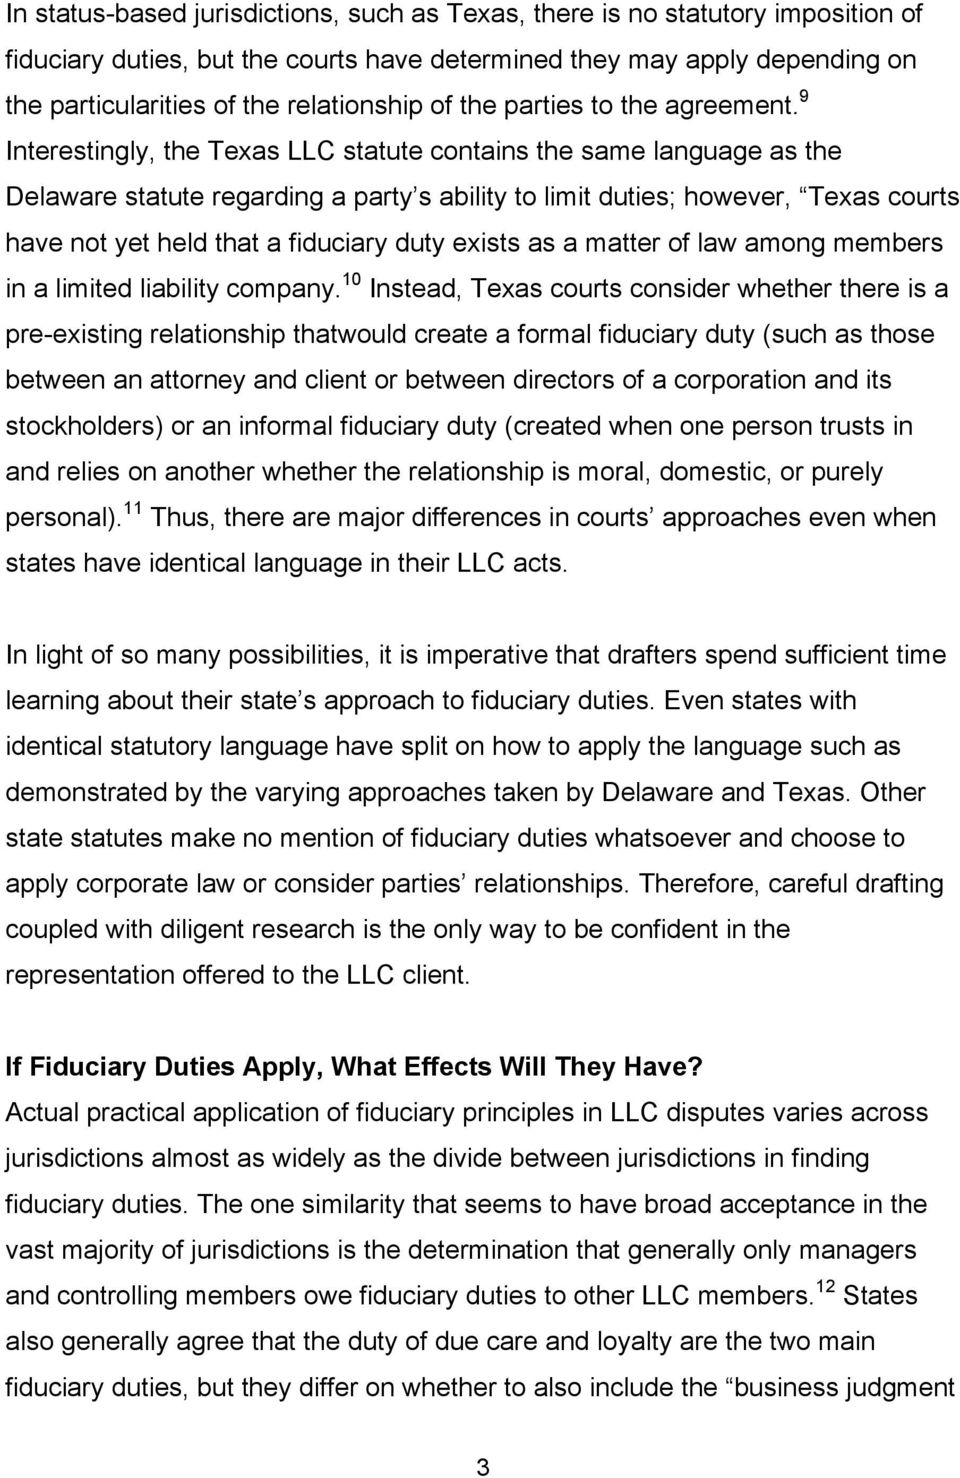 9 Interestingly, the Texas LLC statute contains the same language as the Delaware statute regarding a party s ability to limit duties; however, Texas courts have not yet held that a fiduciary duty